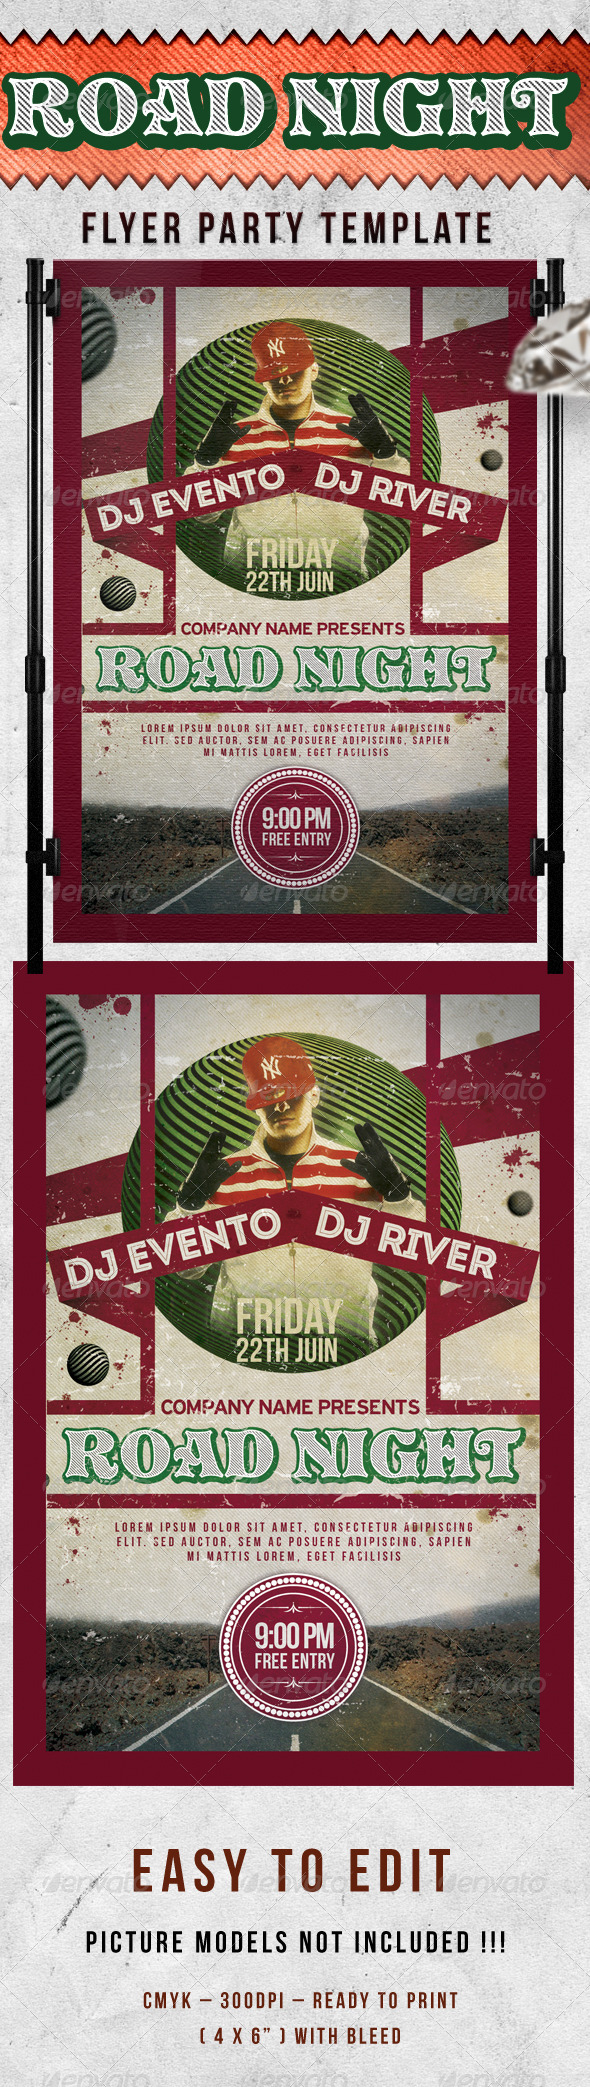 Road Night Party Flyer Template